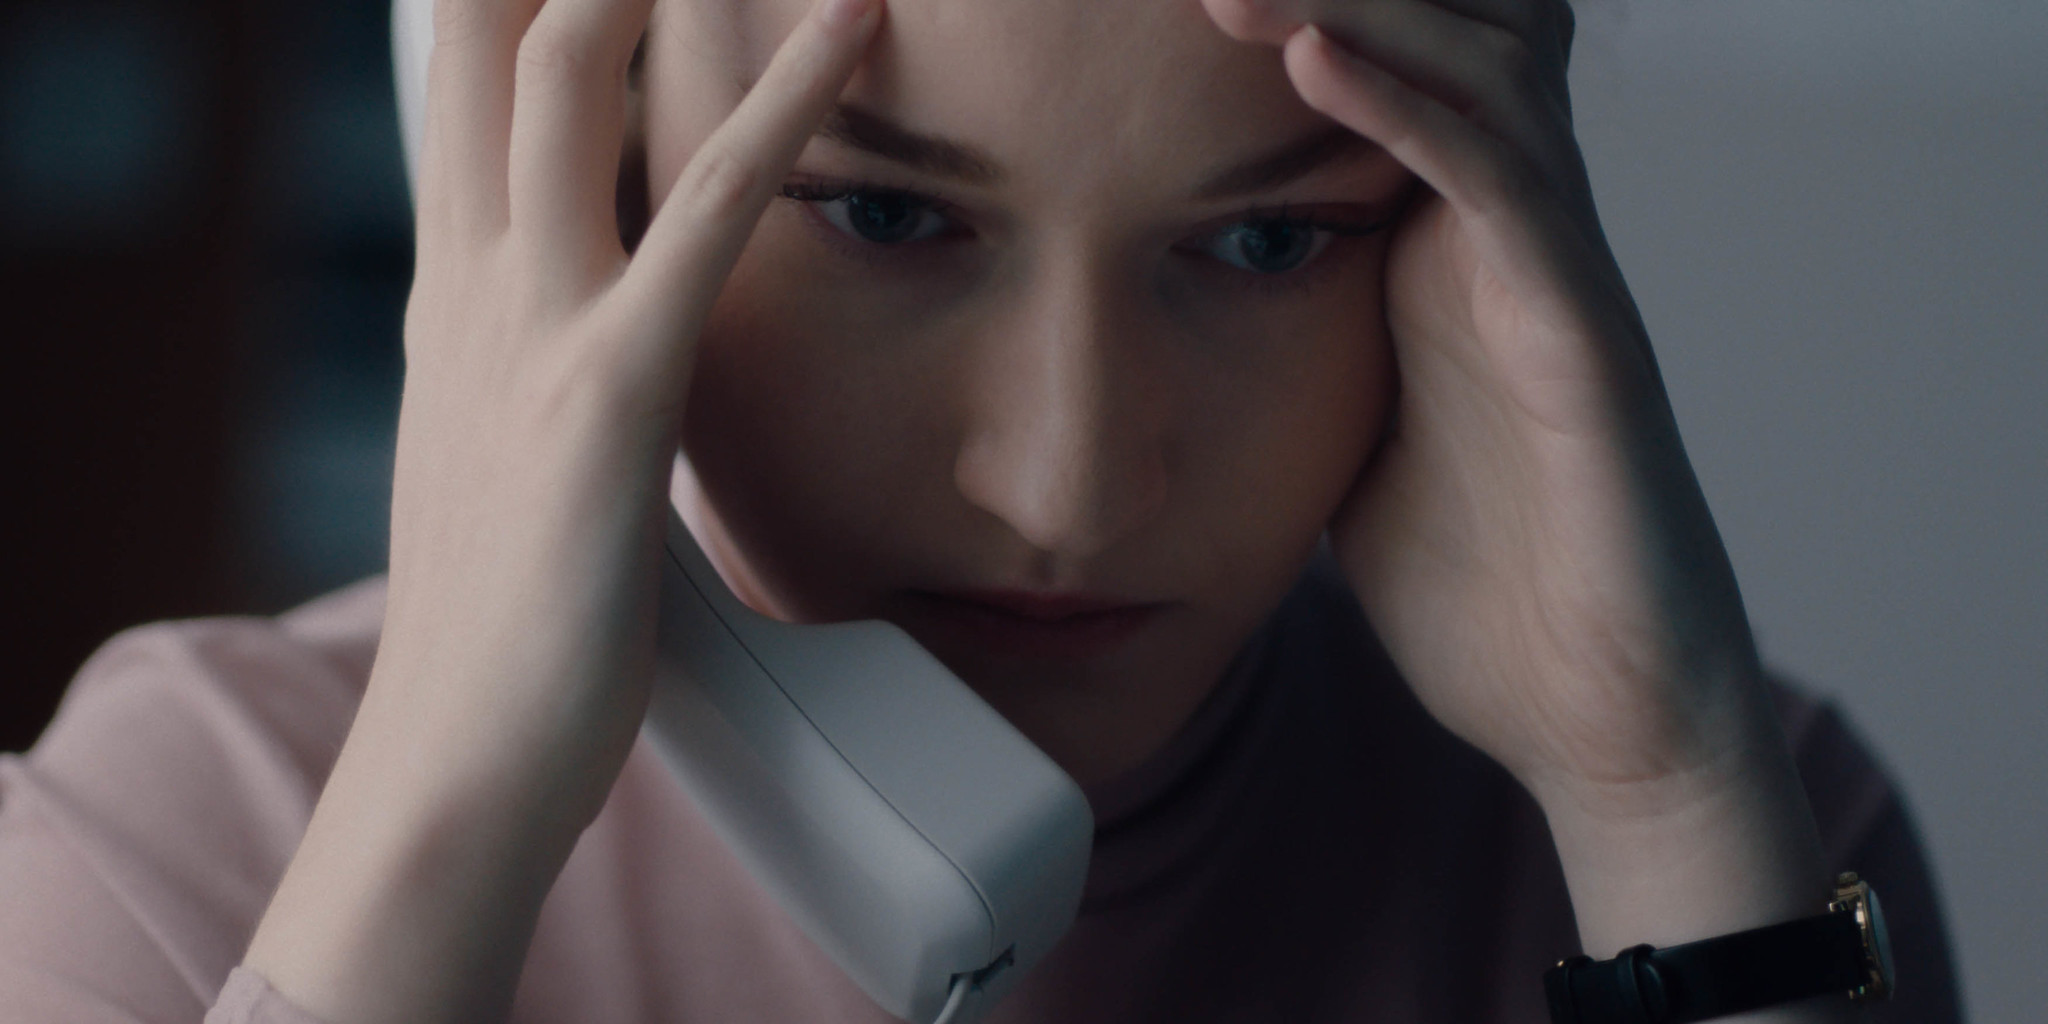 A woman holds a phone receiver to her ear and her head in her hands.